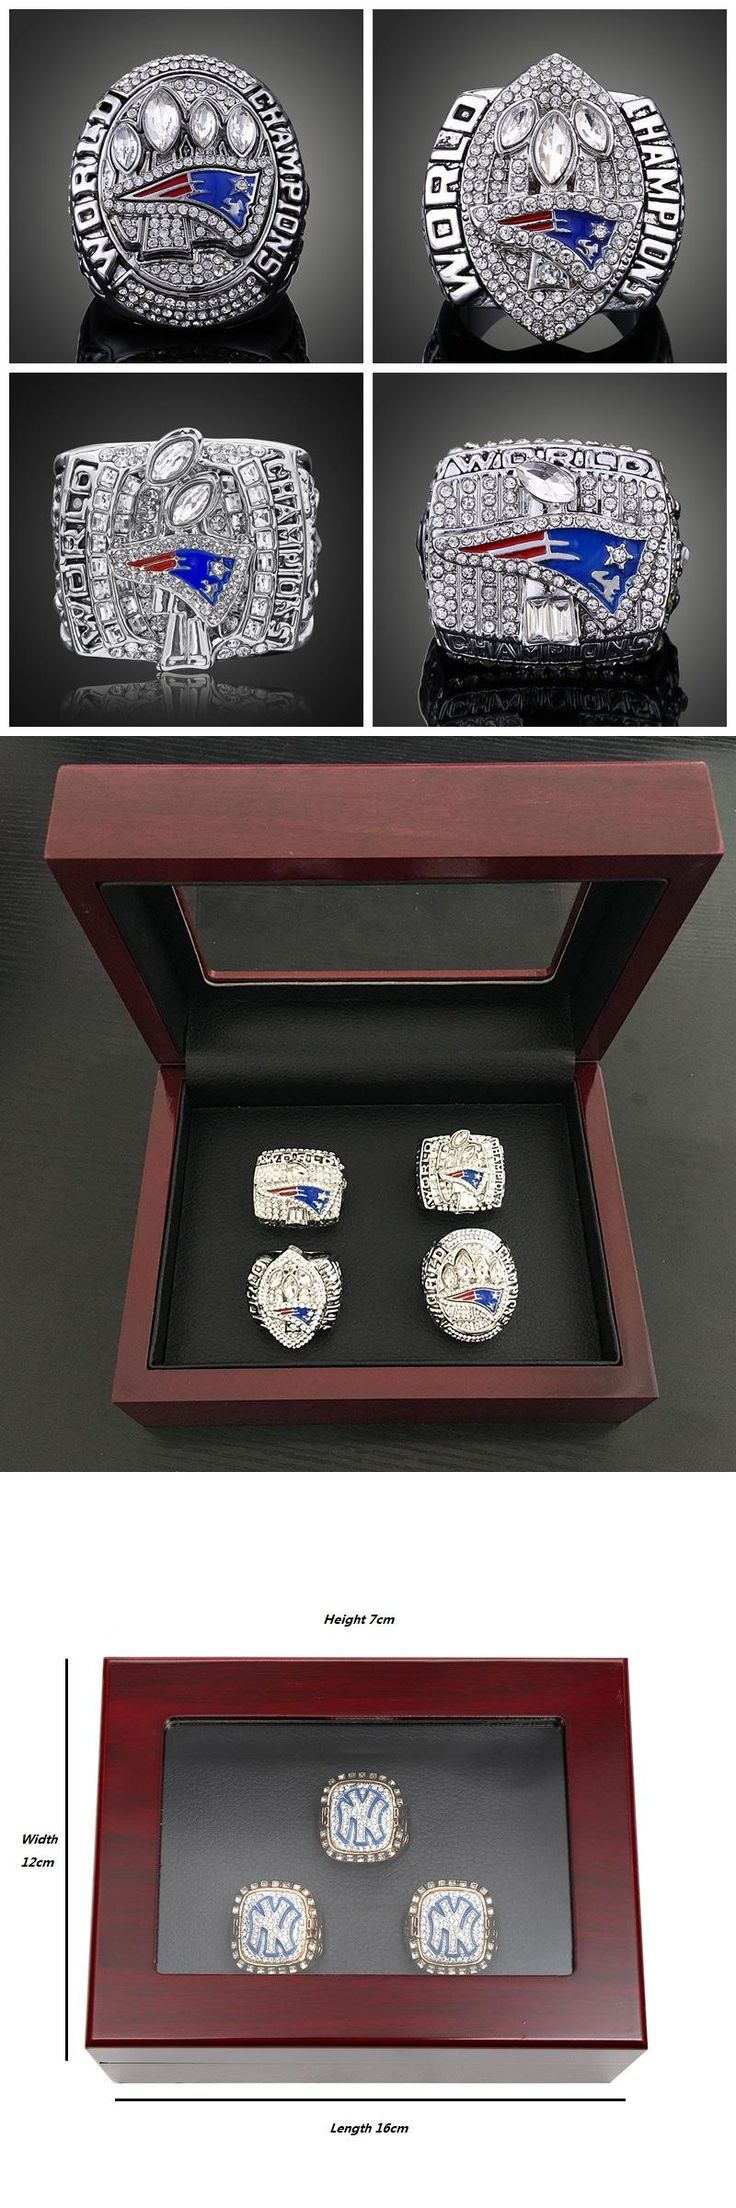 New England Patriots Super Bowl 2001 2003 2004 2014 Championship Rings Sets Replica Alloy Rings With Wooden Box For Fans Gift